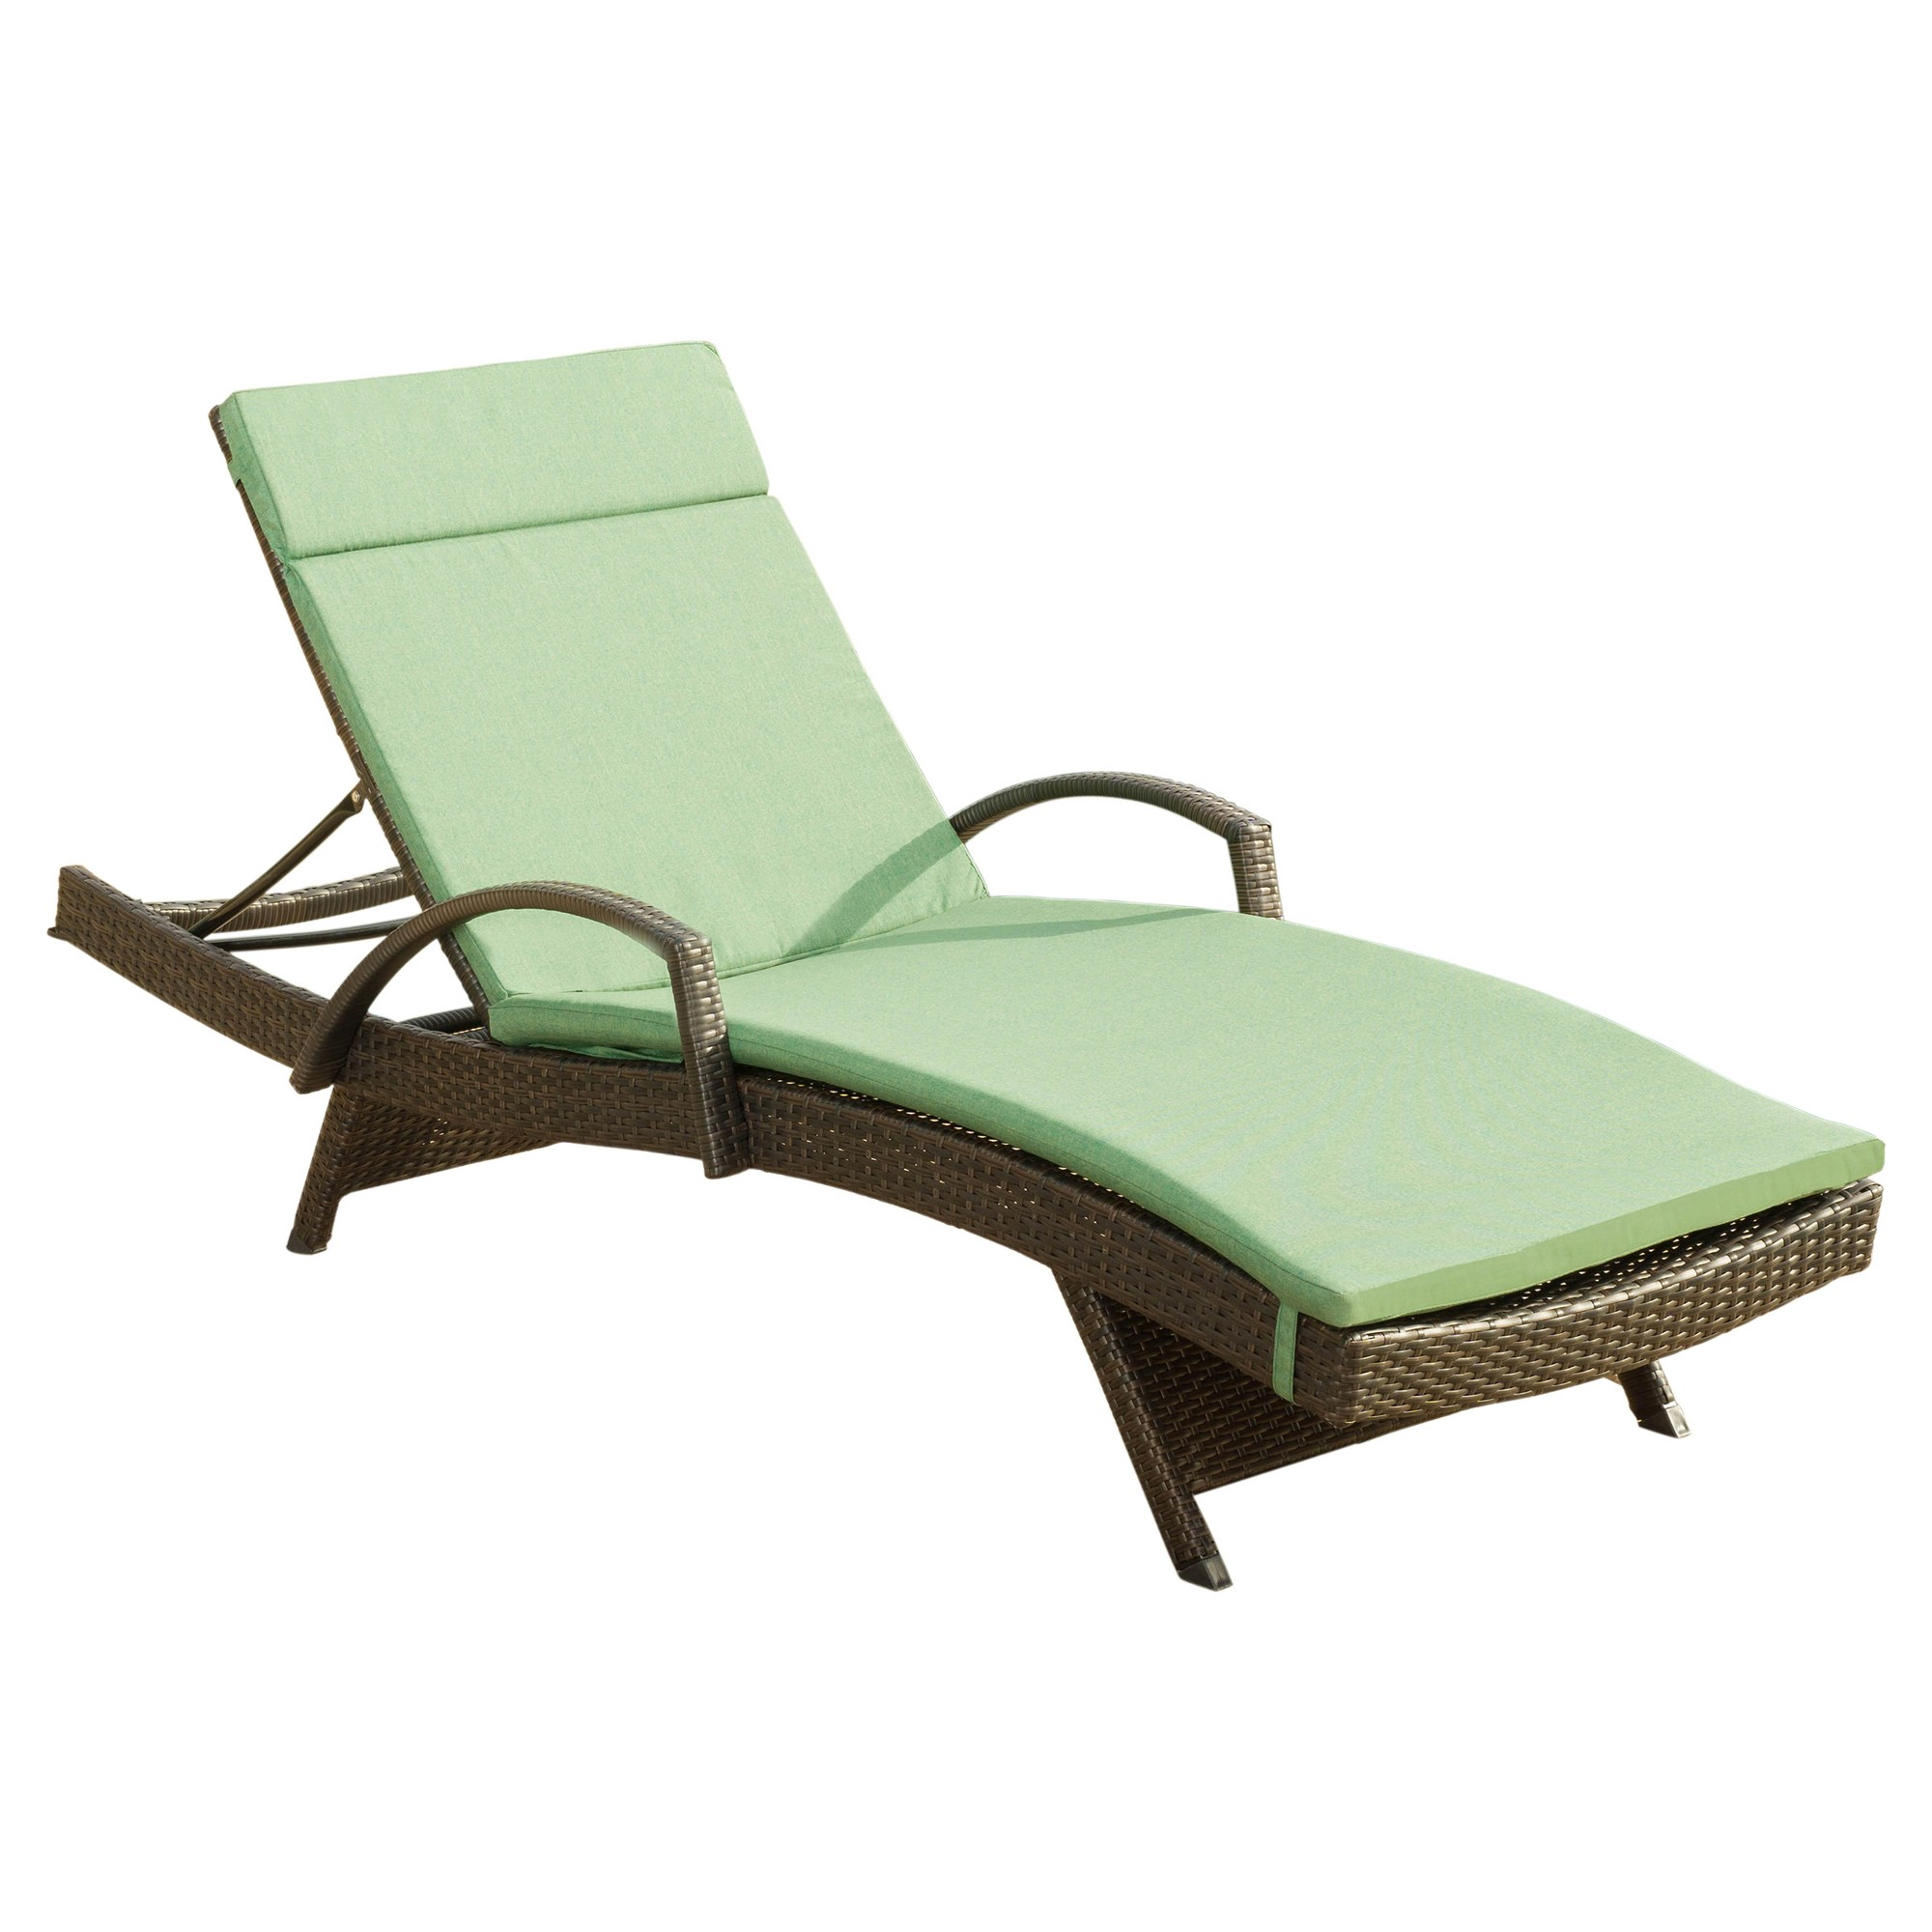 M Brown Wicker Adjule Chaise Lounge With Arms And Cushion Dark Green Christopher Knight Home